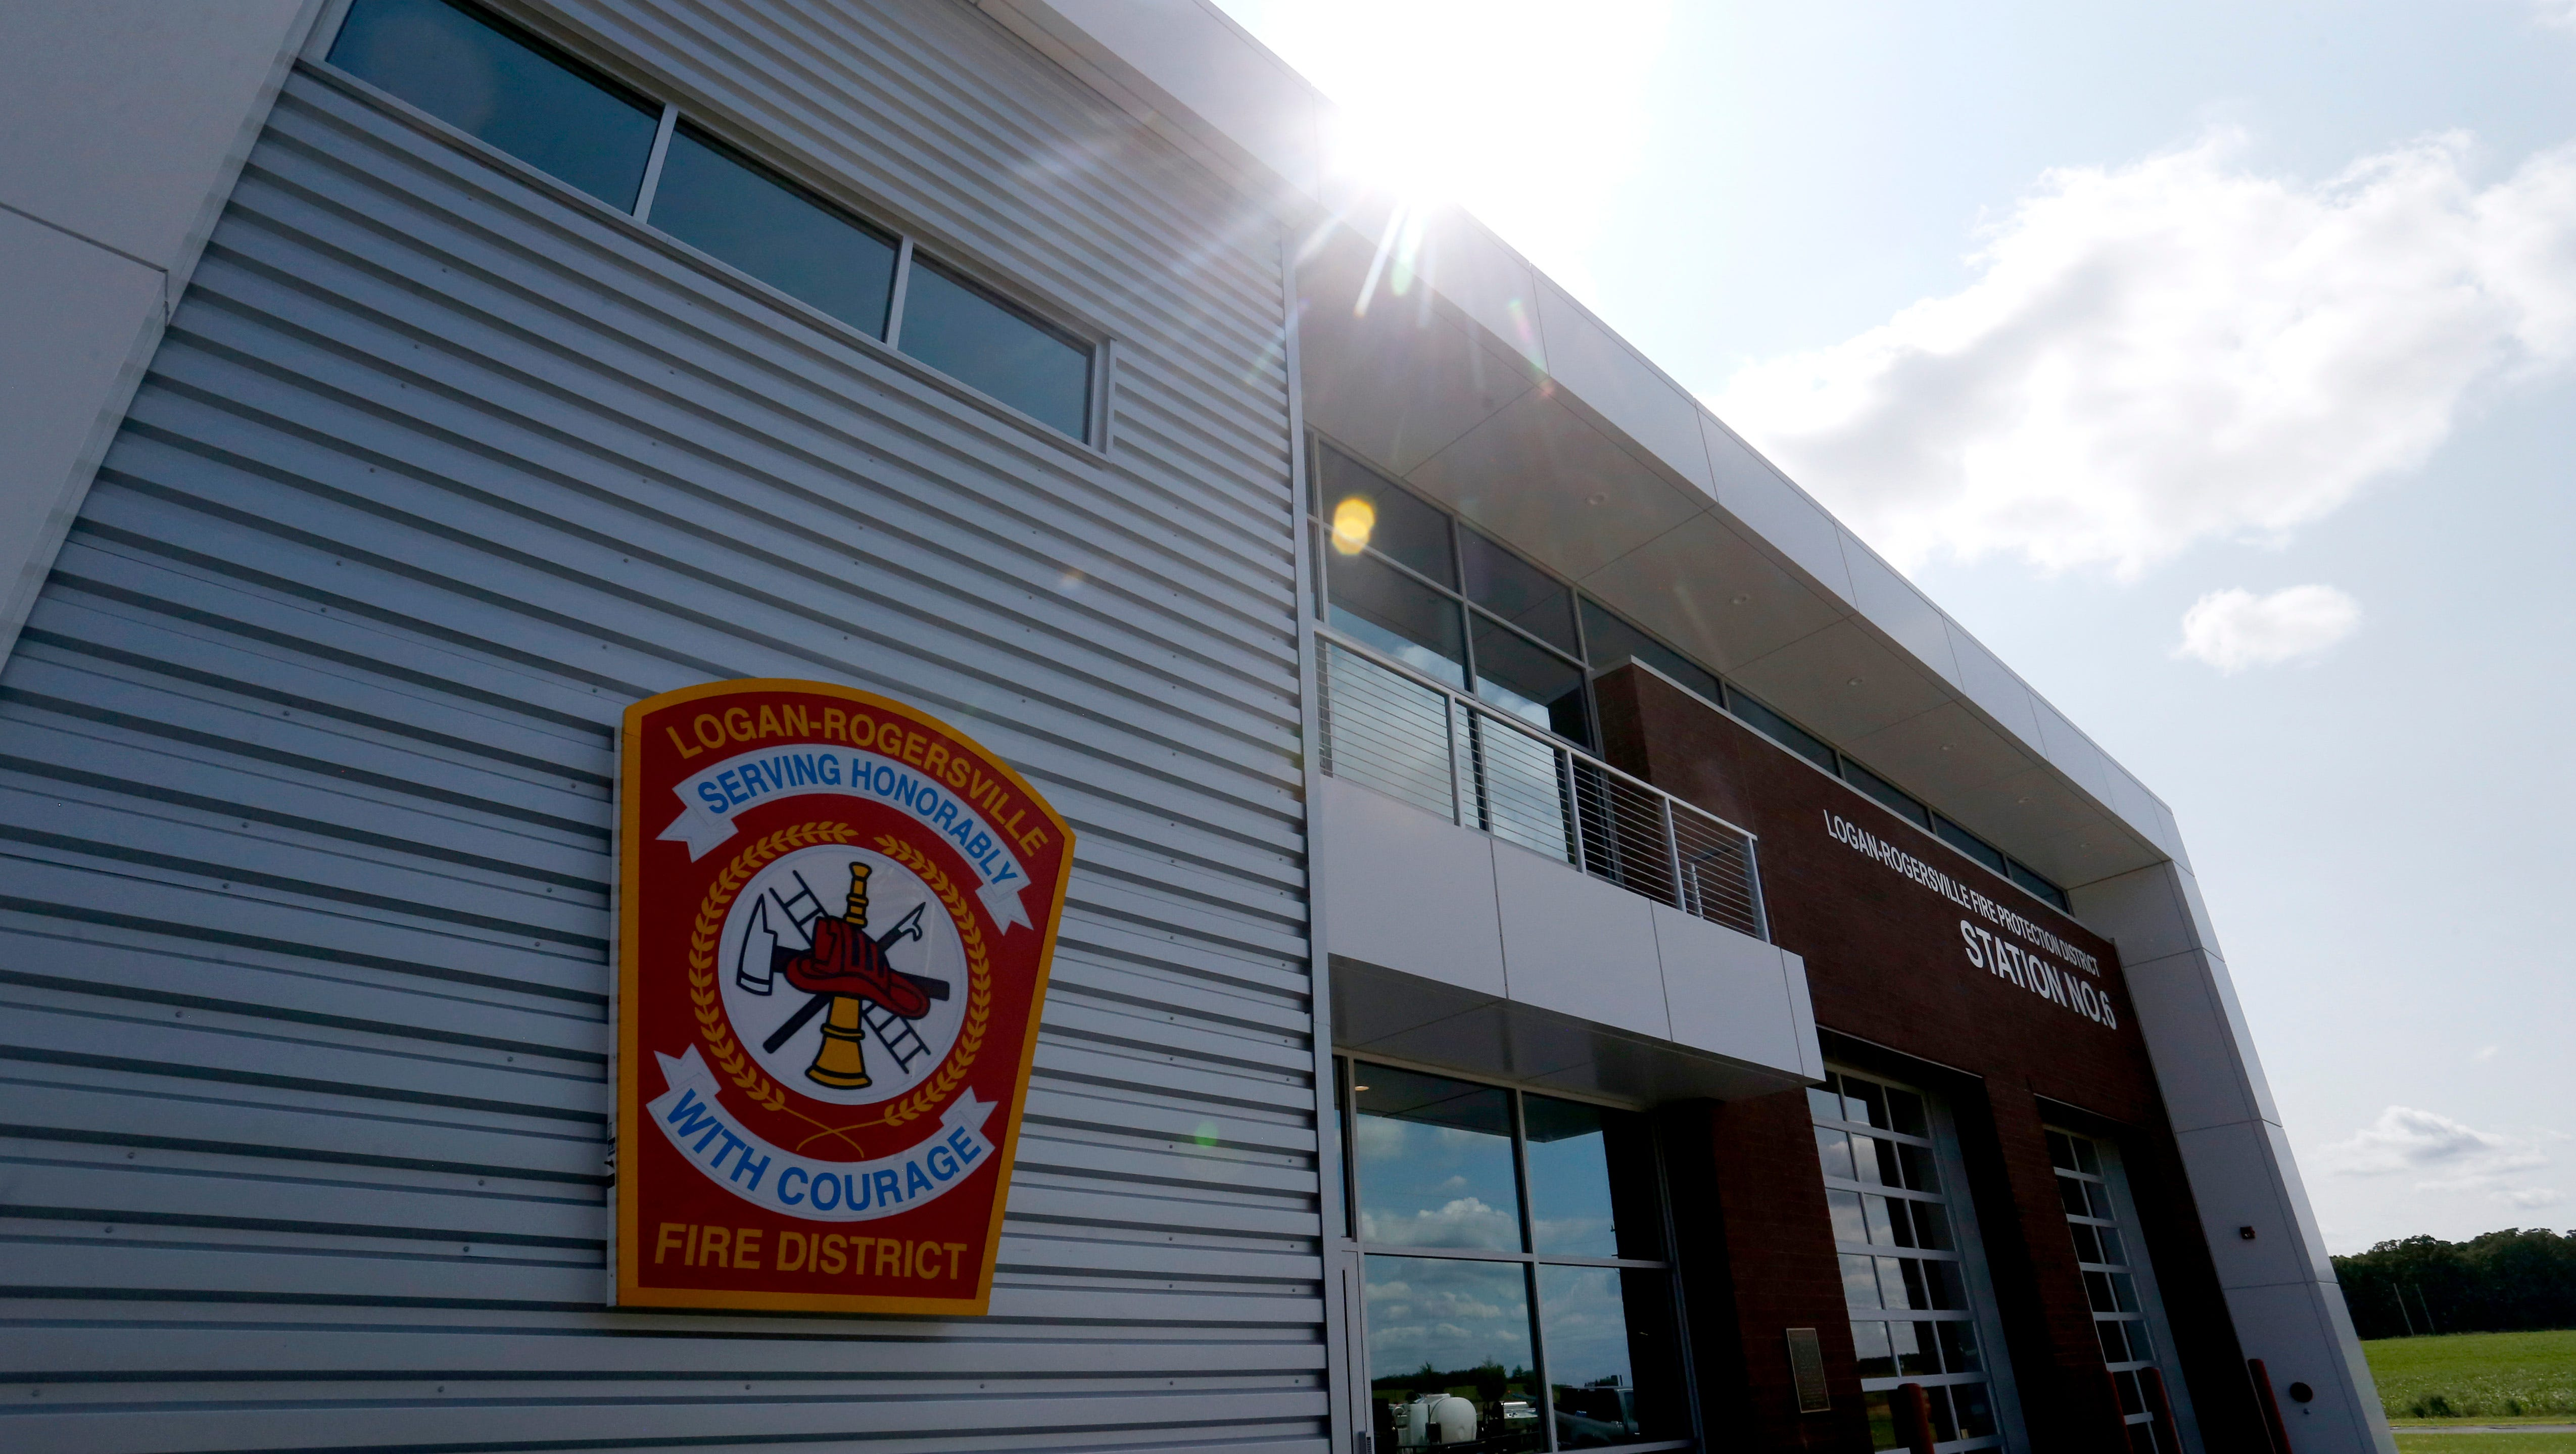 The Logan-Rogersville Fire Protection District showed off its new fire station on Friday, Aug. 17, 2018. The new station is the 6th for the district and the third station to be manned full time and cost an estimated $2.2 million.